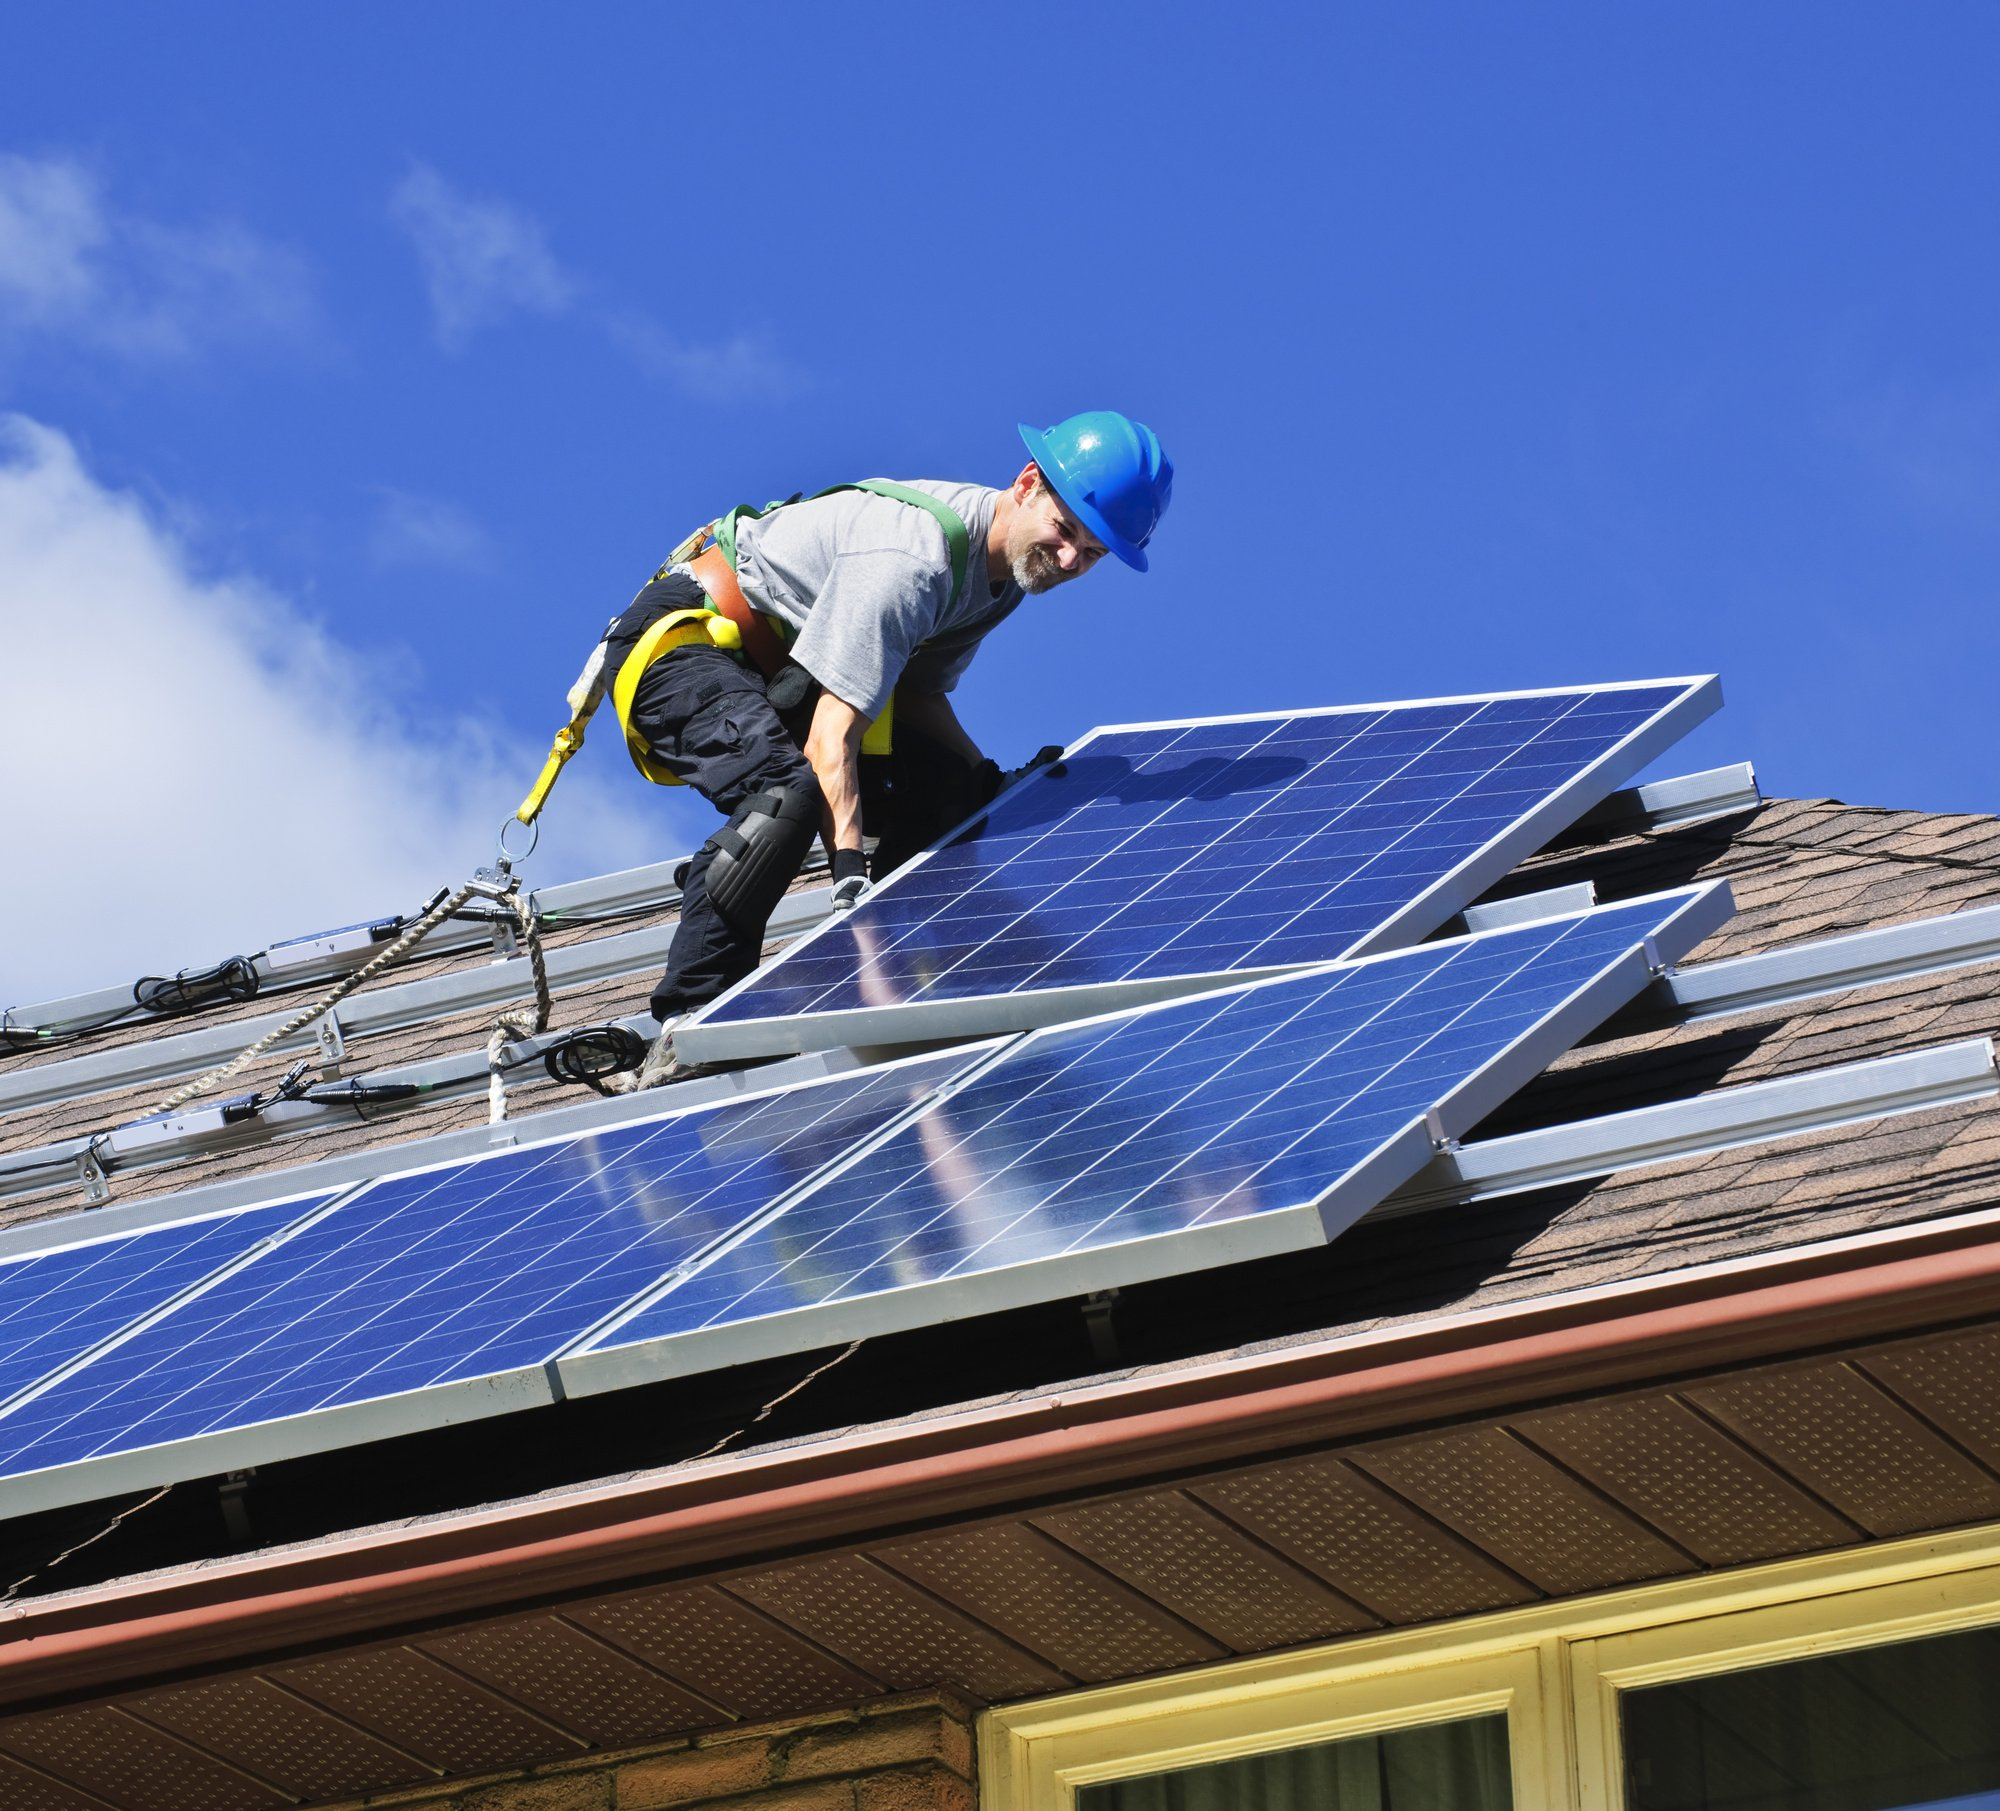 5 Questions to Ask Your Solar Contractor Before Having Panels Installed